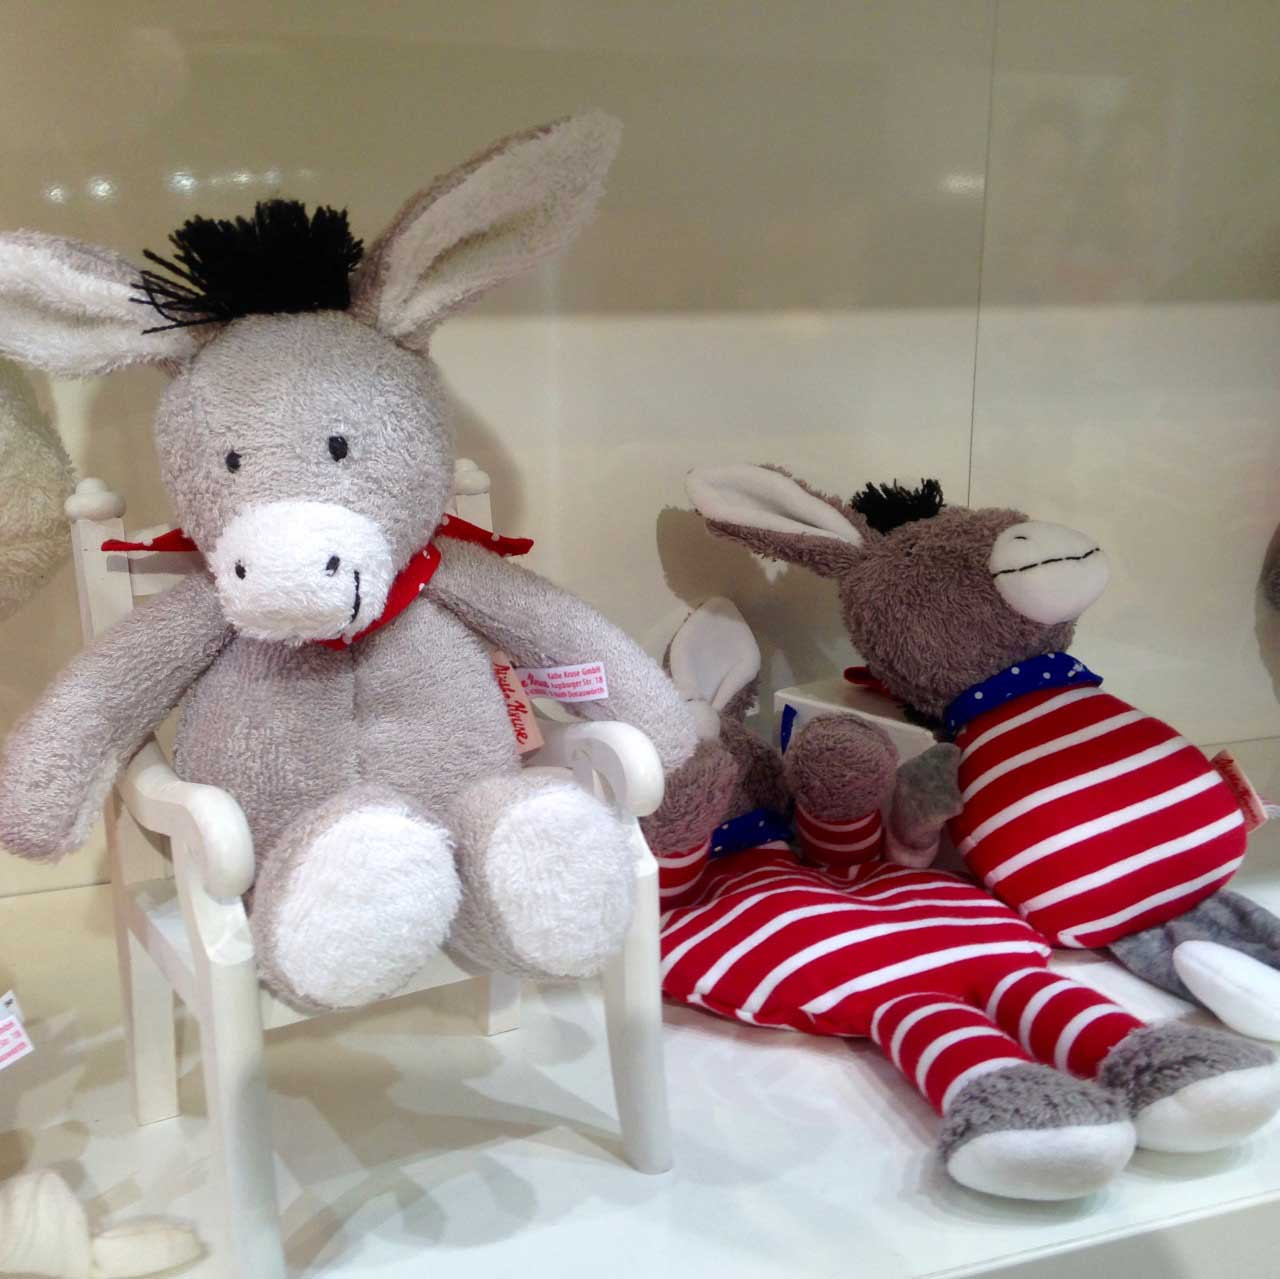 Tomato the donkey lives on with some new items